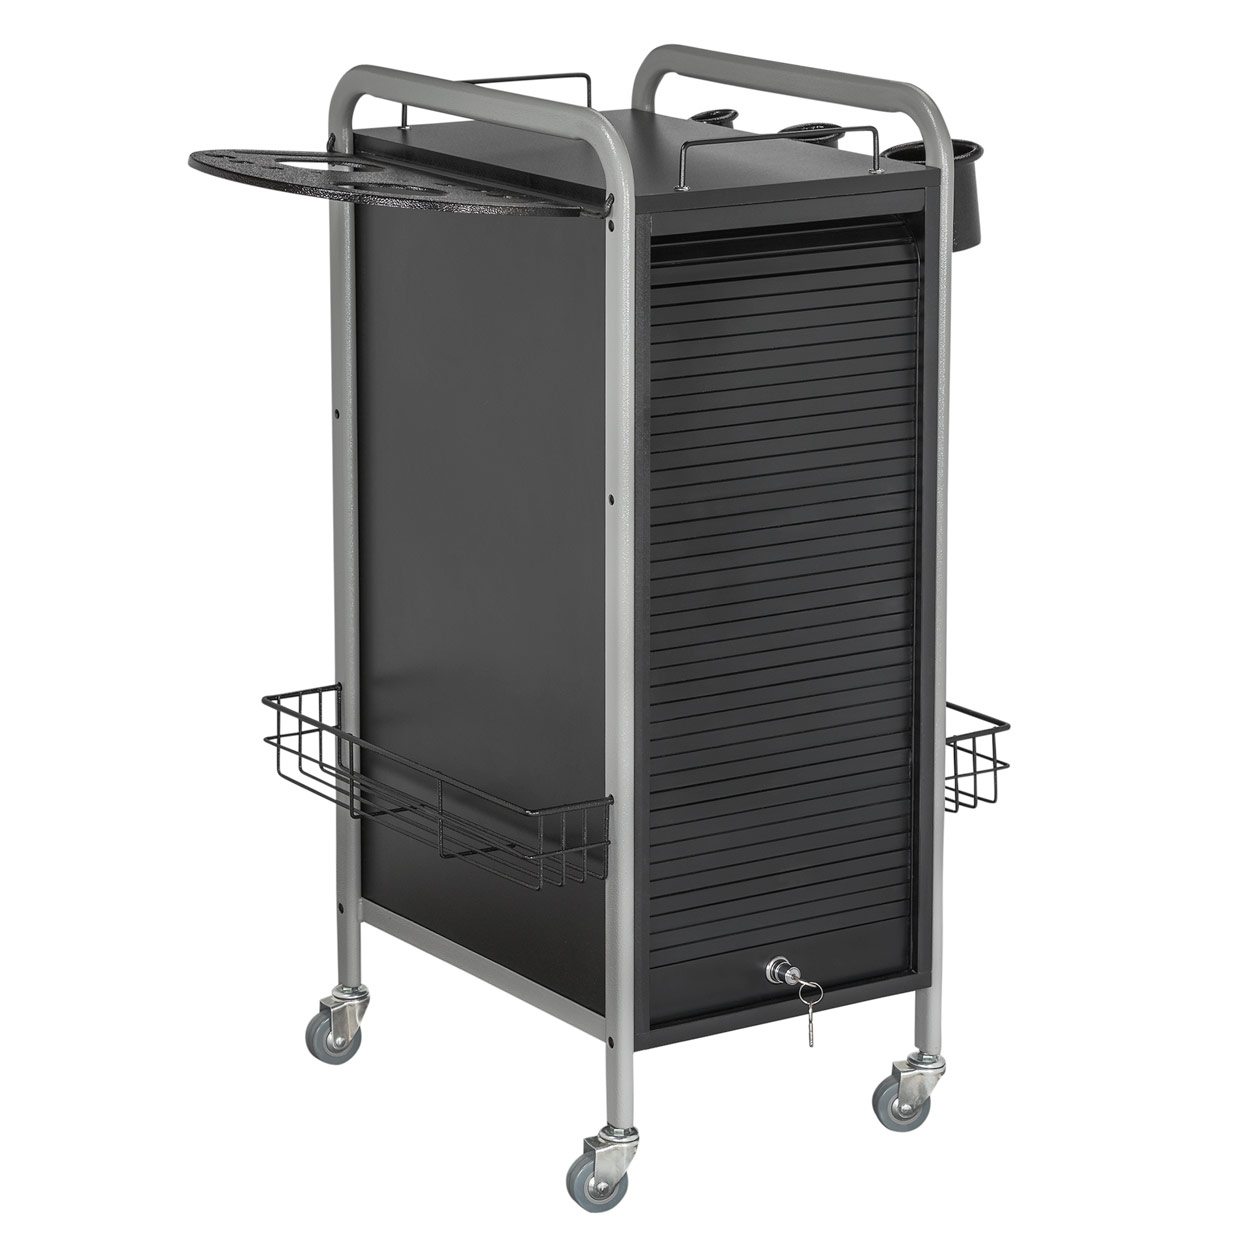 Salone Tray Surreal And Unconventional: Hair Salon Metal Locking Trolley Cart